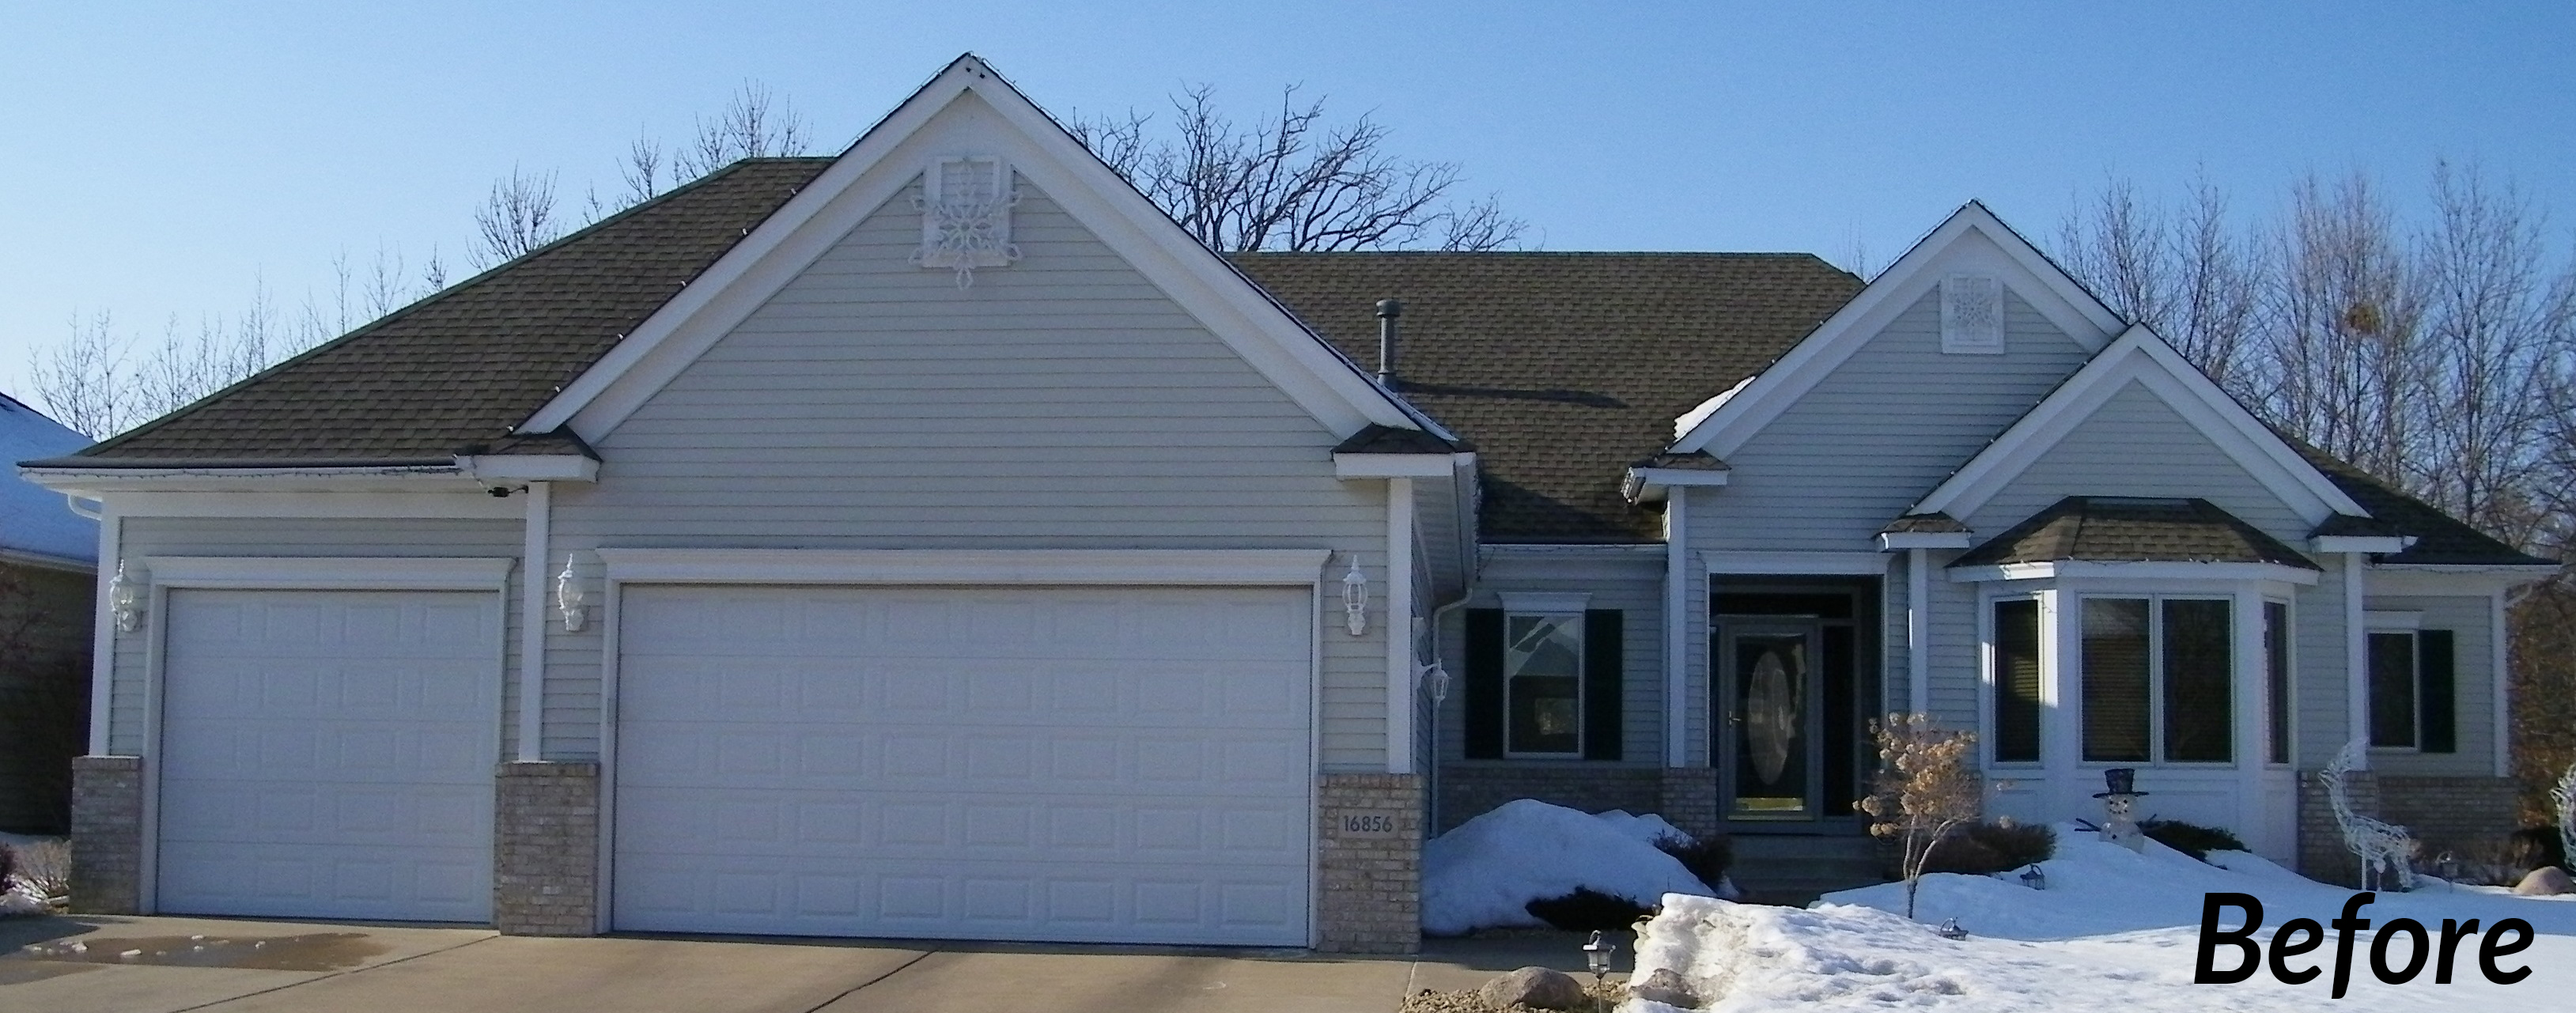 Maple Garage Doors Want To Improve The Value Of Your Home Amek Home Remodeling